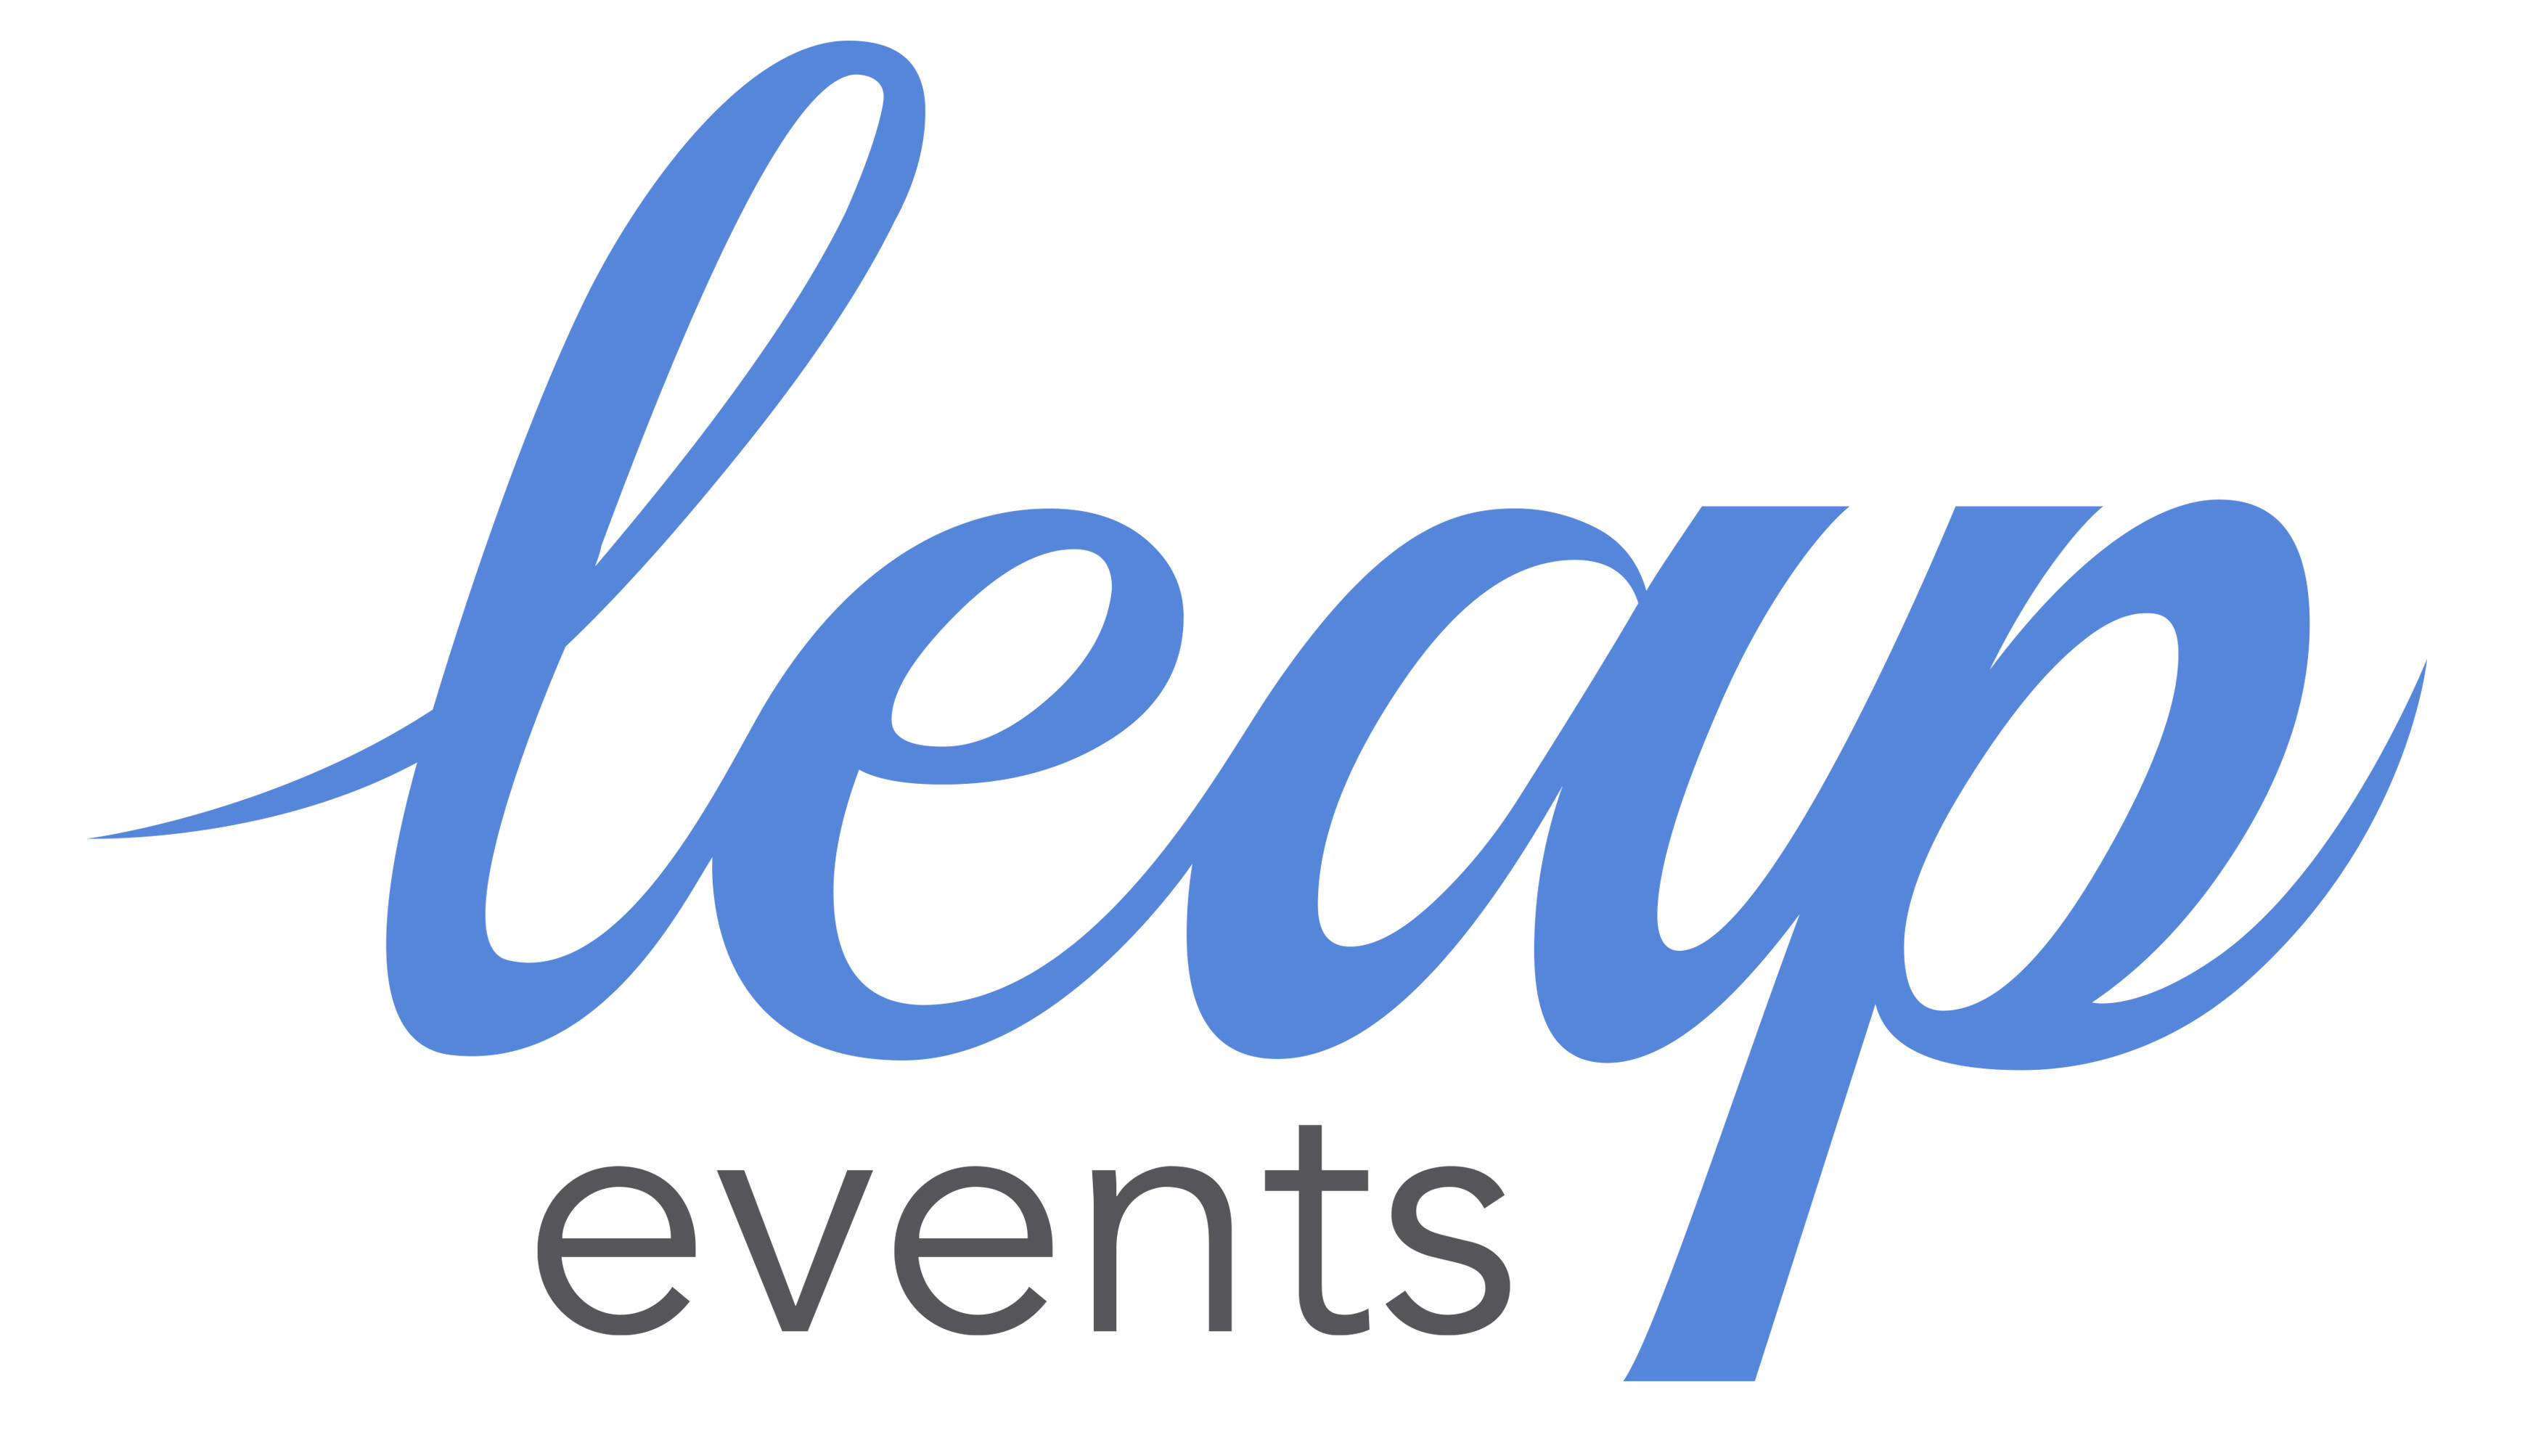 Leap Event Management